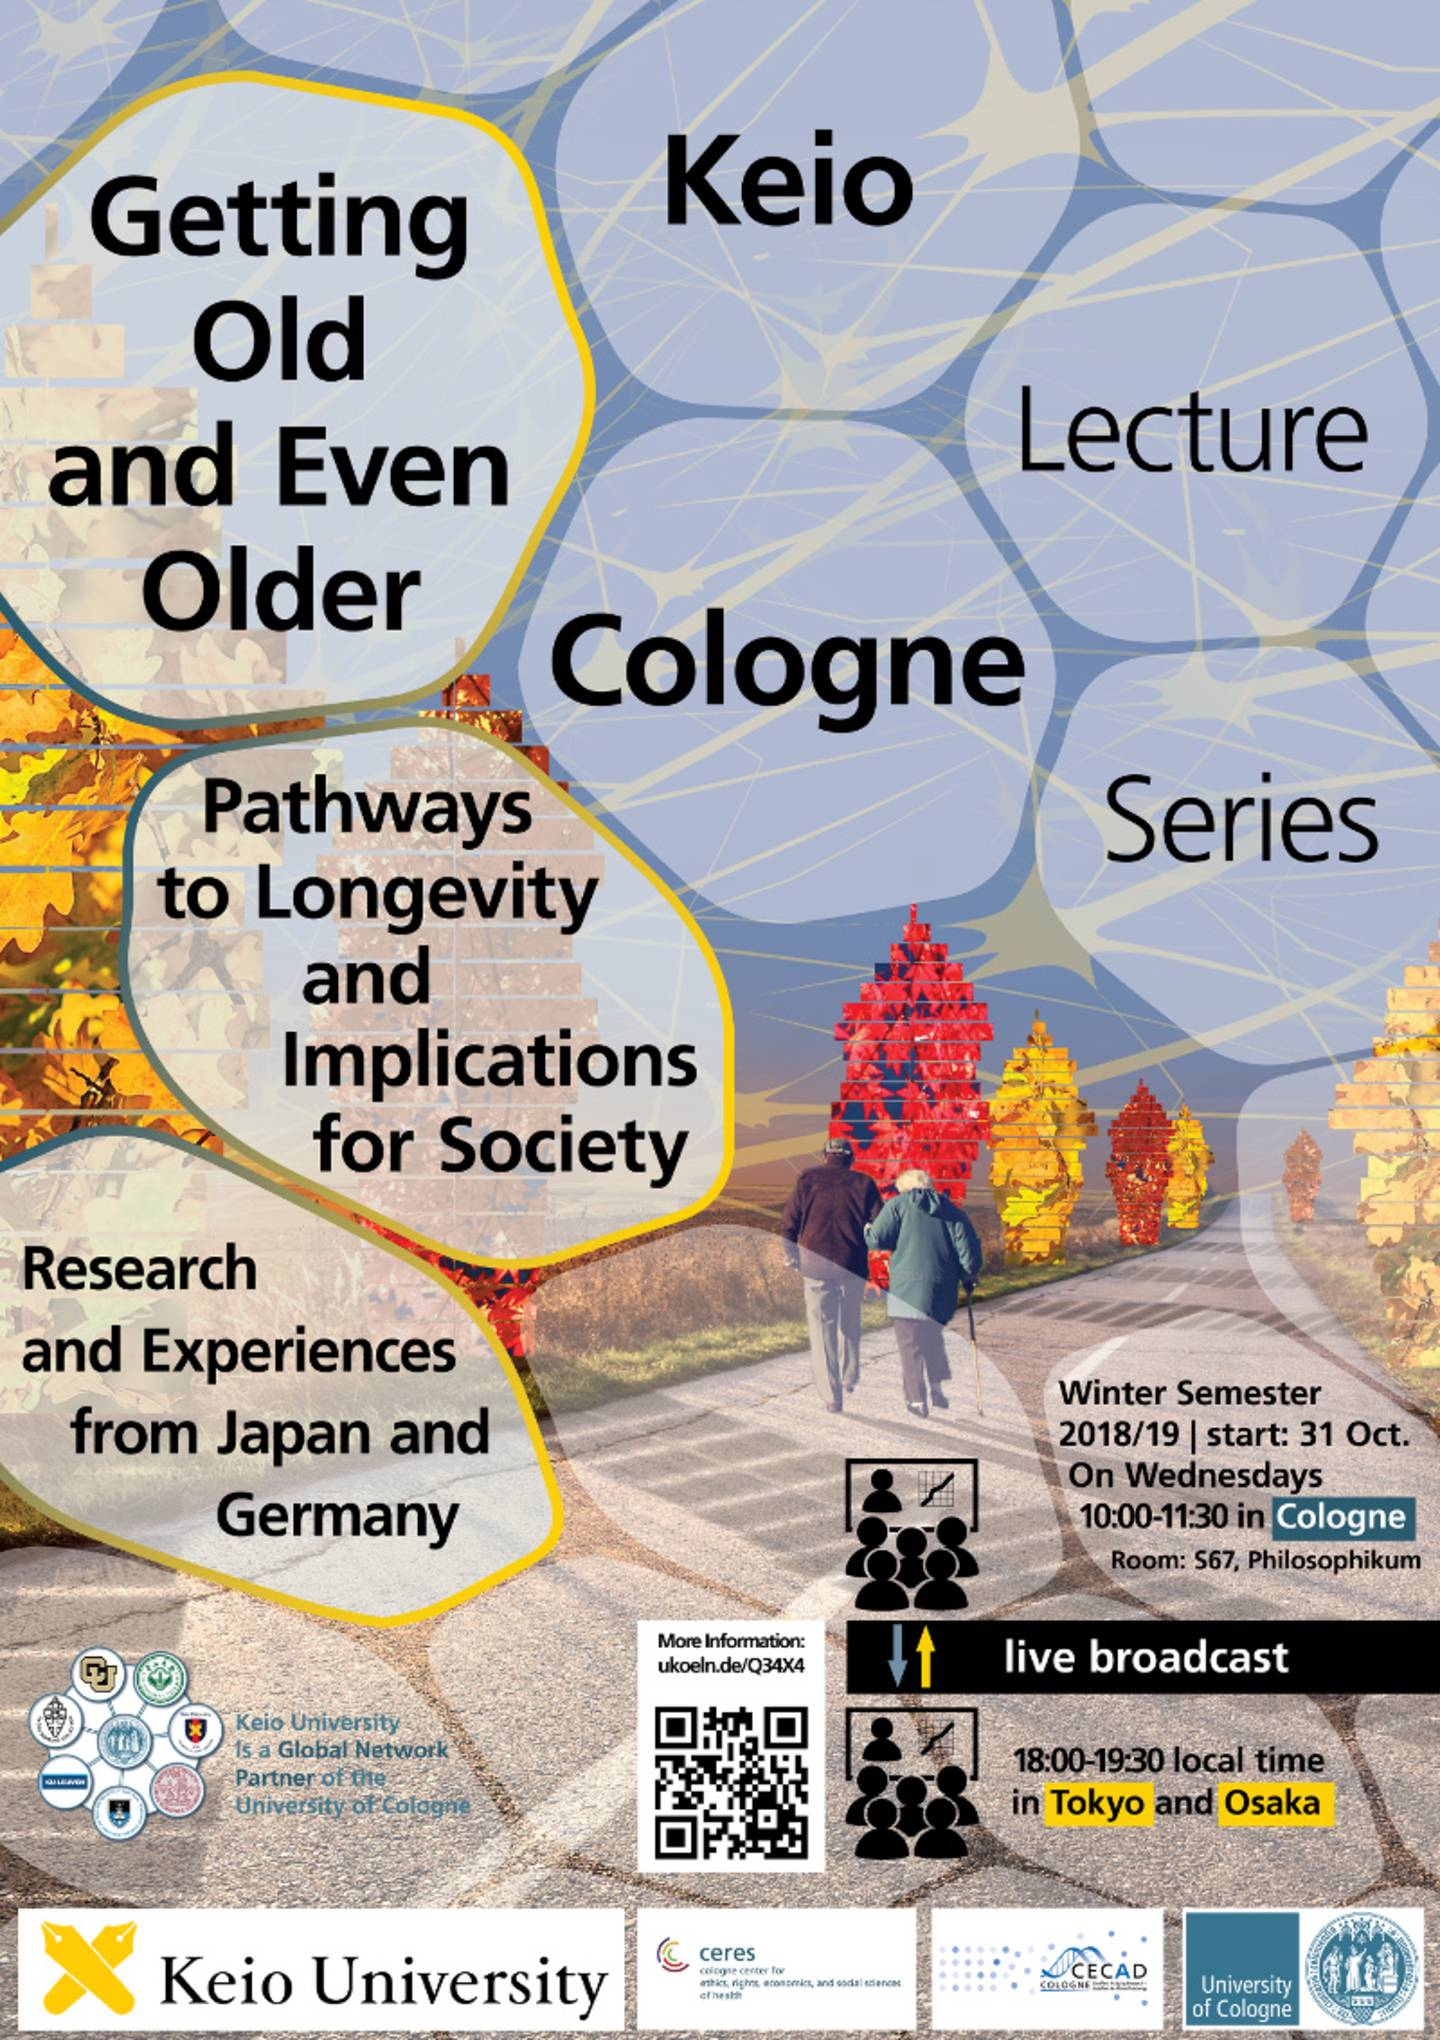 Keio Cologne Lecture Series  Title: Getting Old and Even Older – Pathways to Longevity and Implications for Society